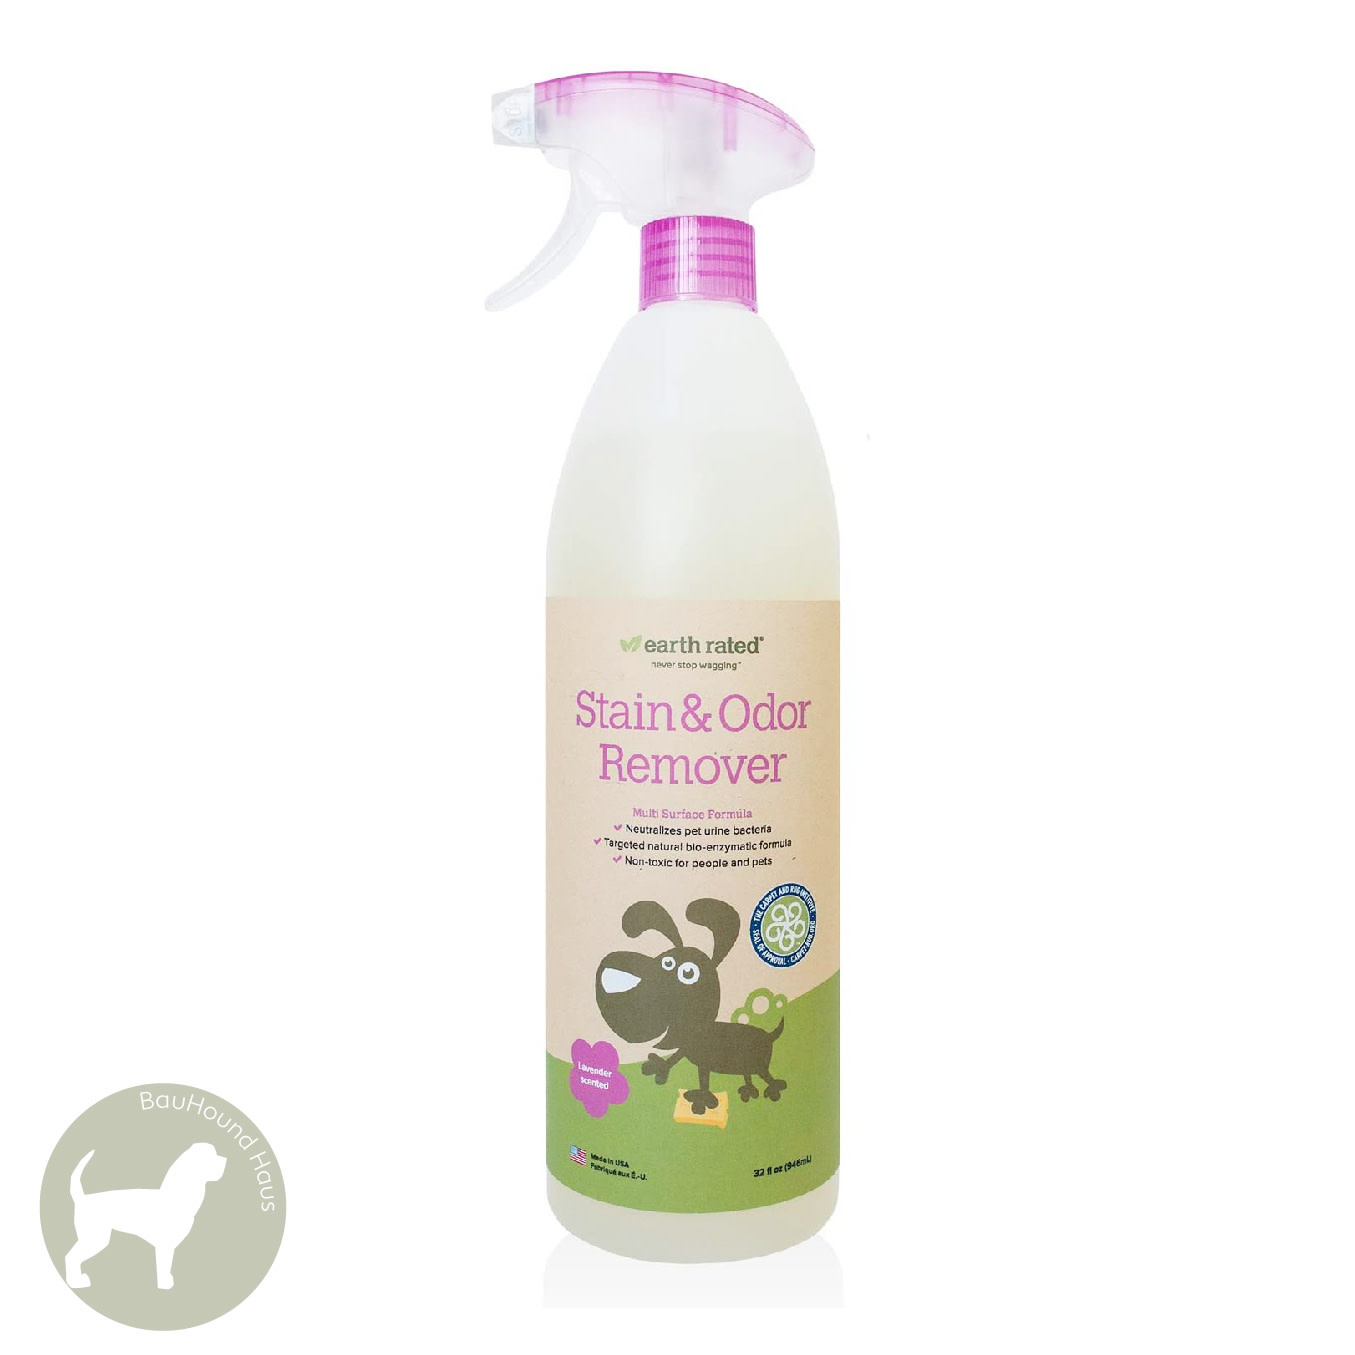 Eco Group Inc Earth rated Lavendar Scented Stain & Odour Remover